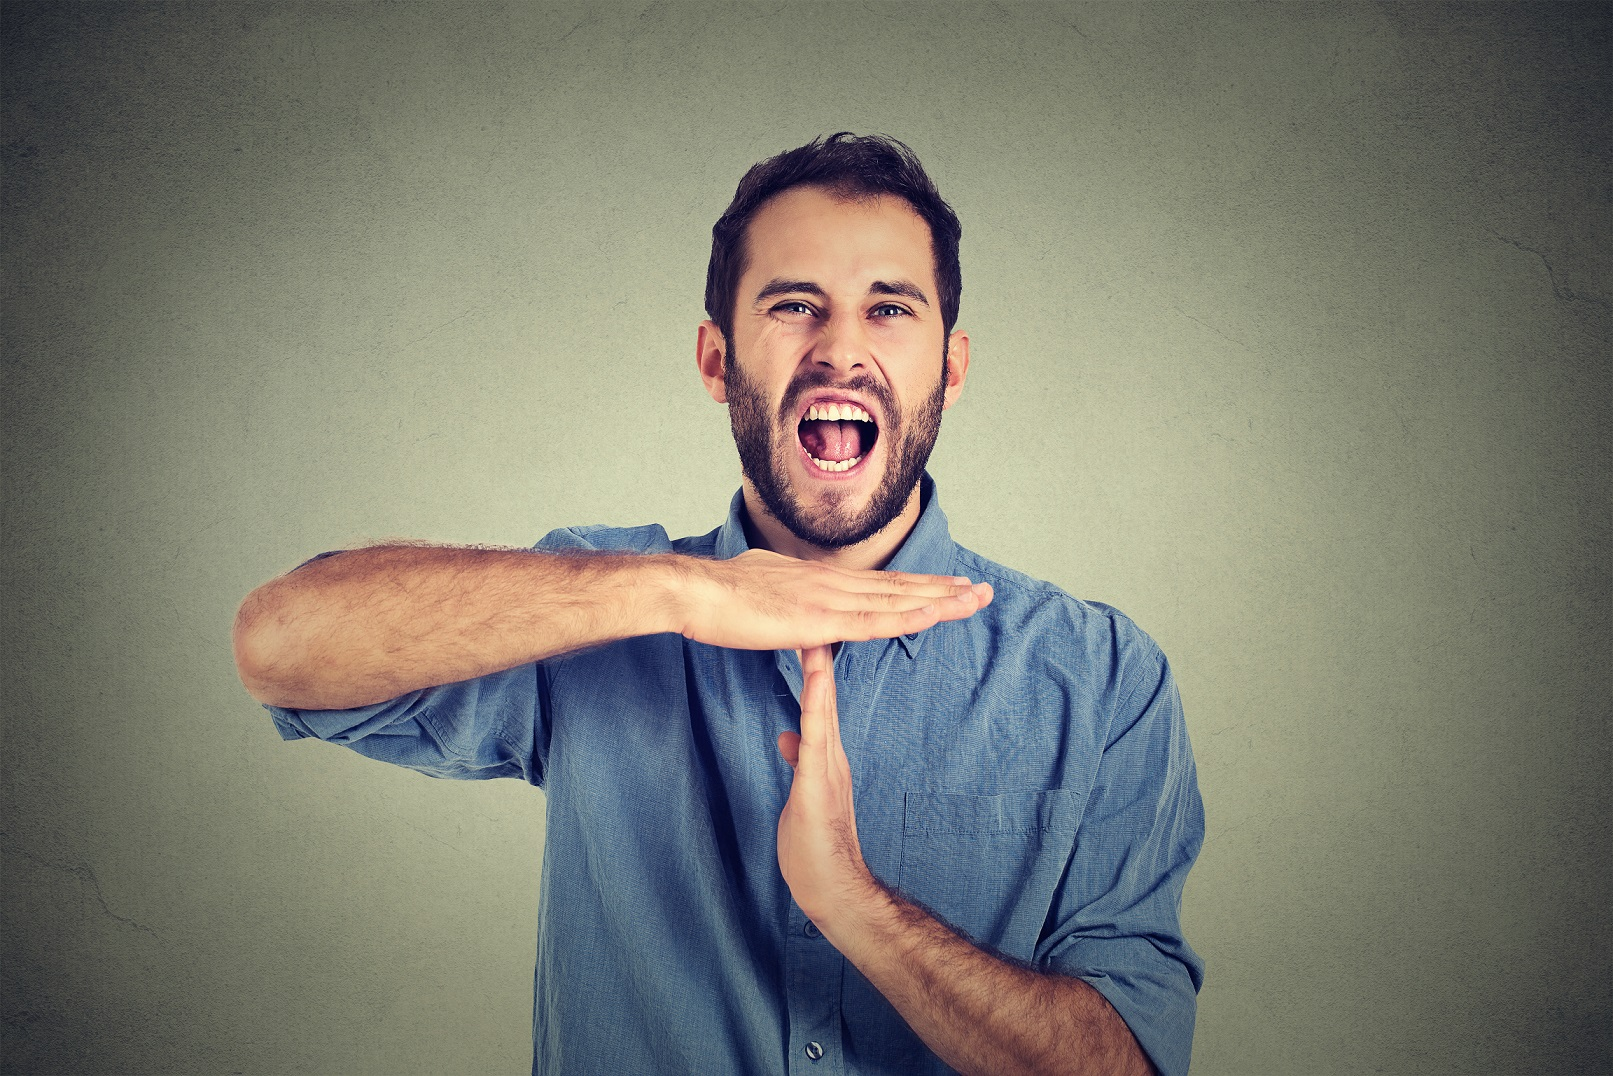 man showing time out hand gesture frustrated screaming stop